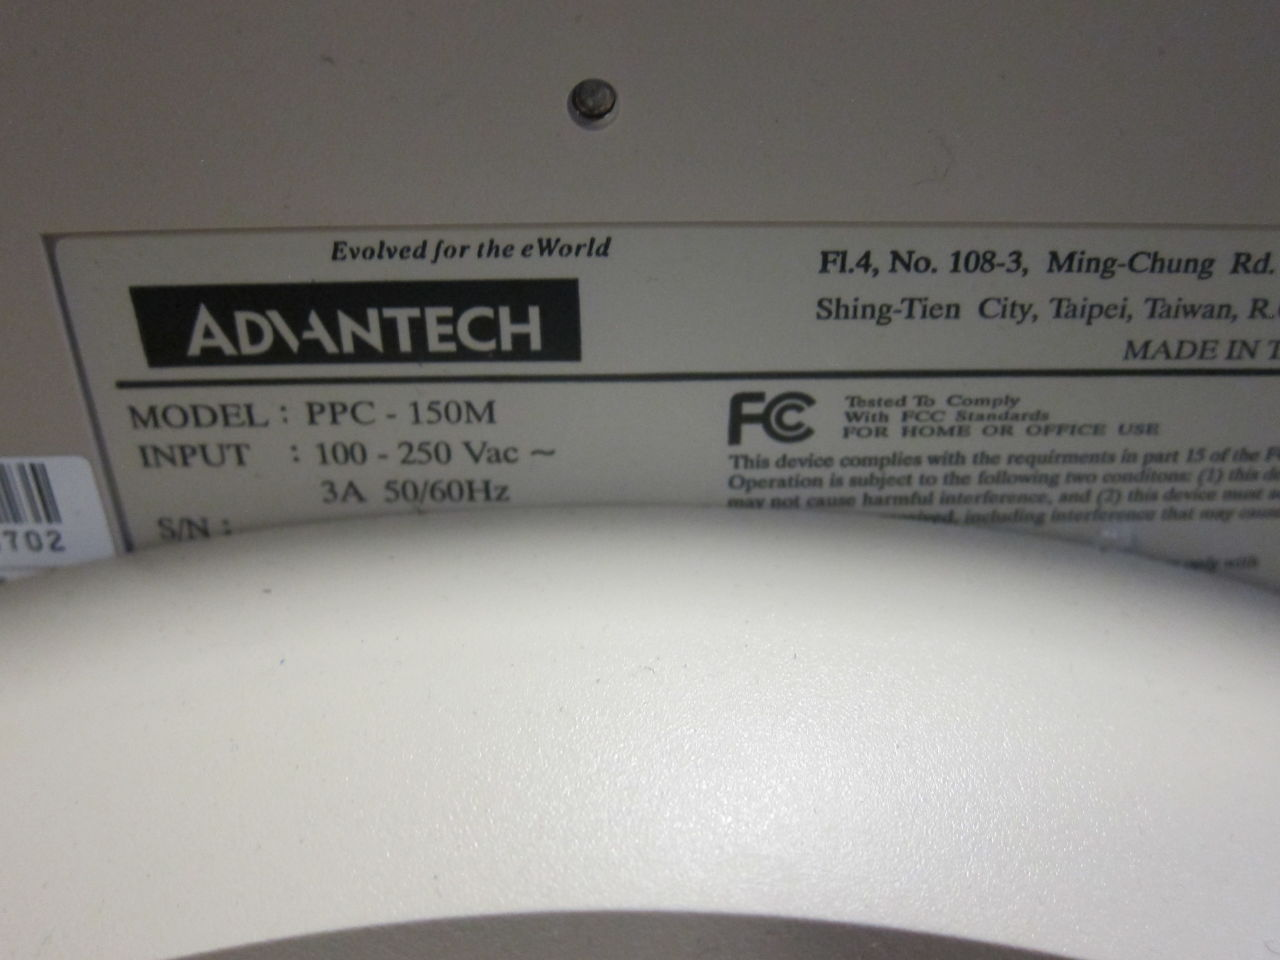 ADVANTECH LiDCO Plus Bedside Monitor